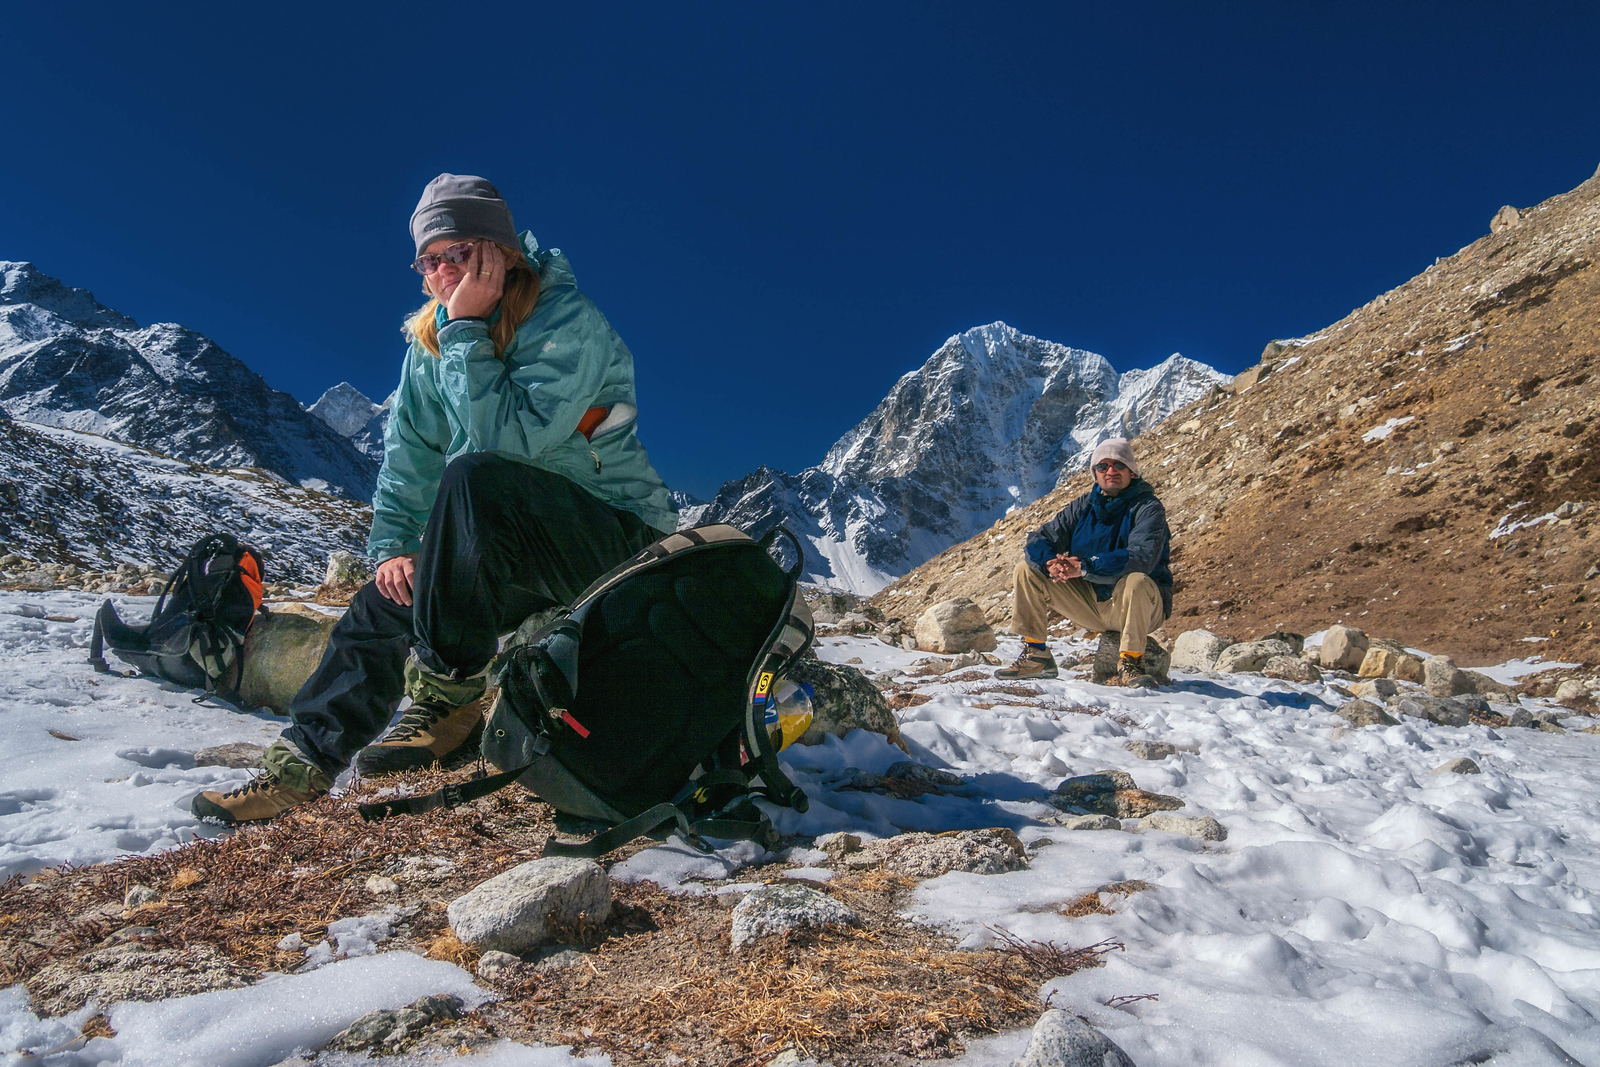 The Altitude starts to take its toll the closer we get to Everest Base Camp